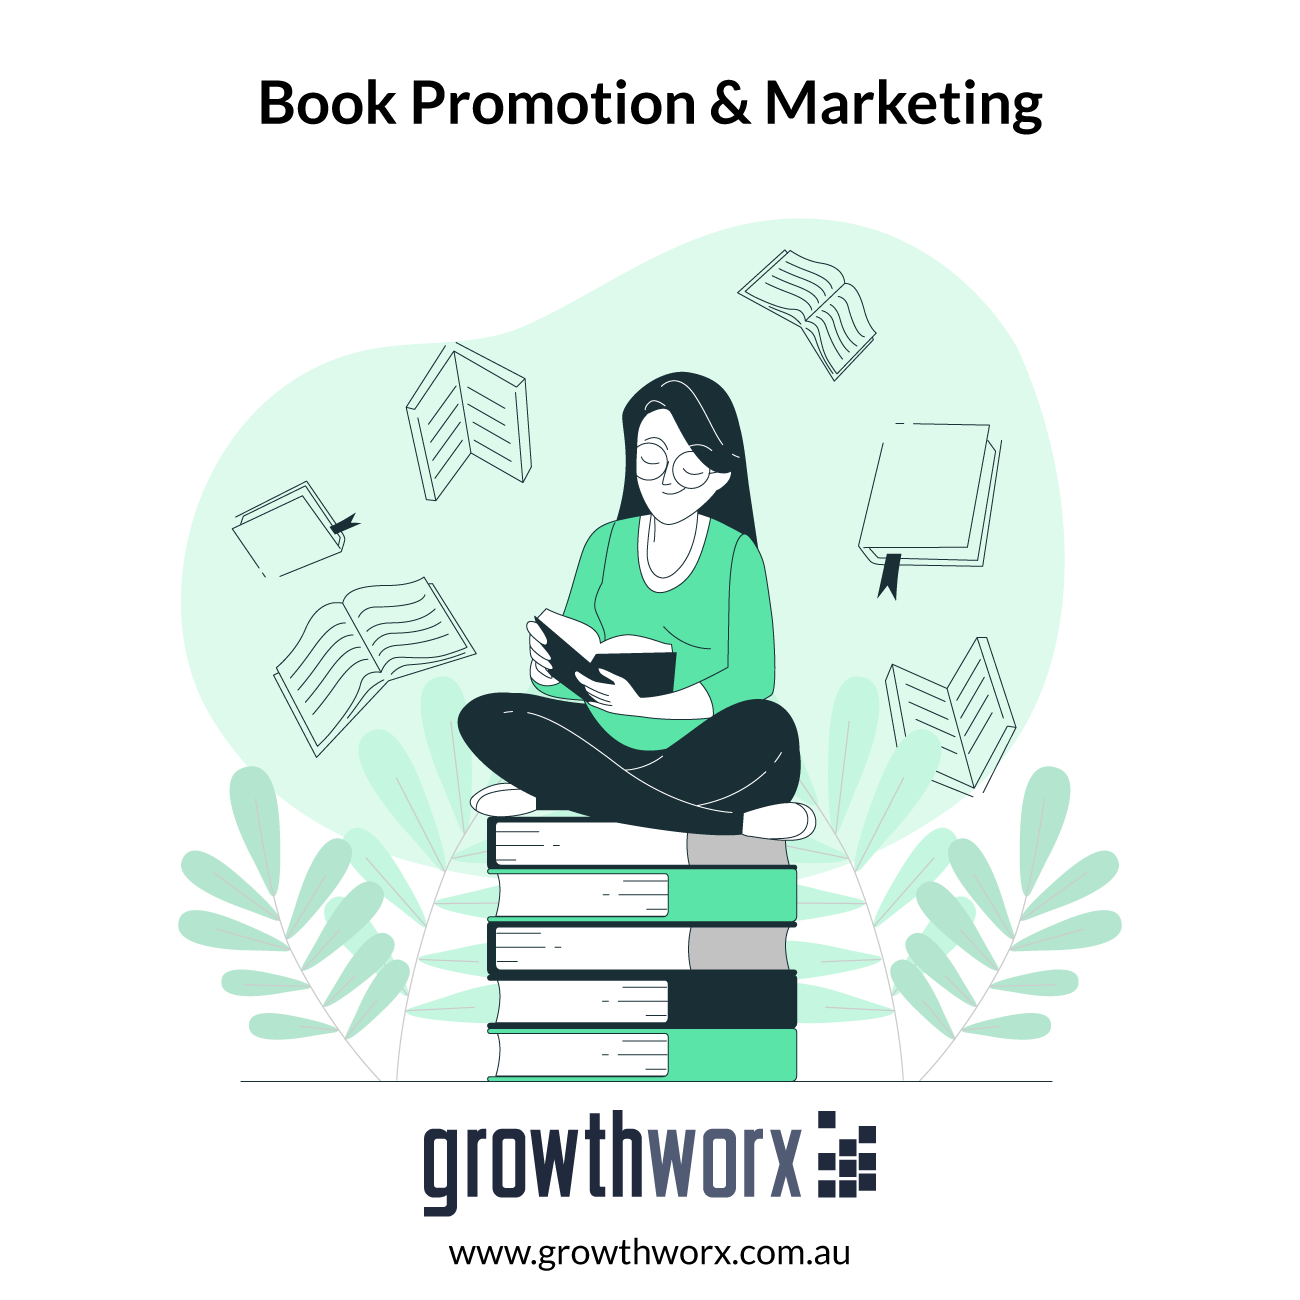 I will promote you book on my blog as the book of the day 1